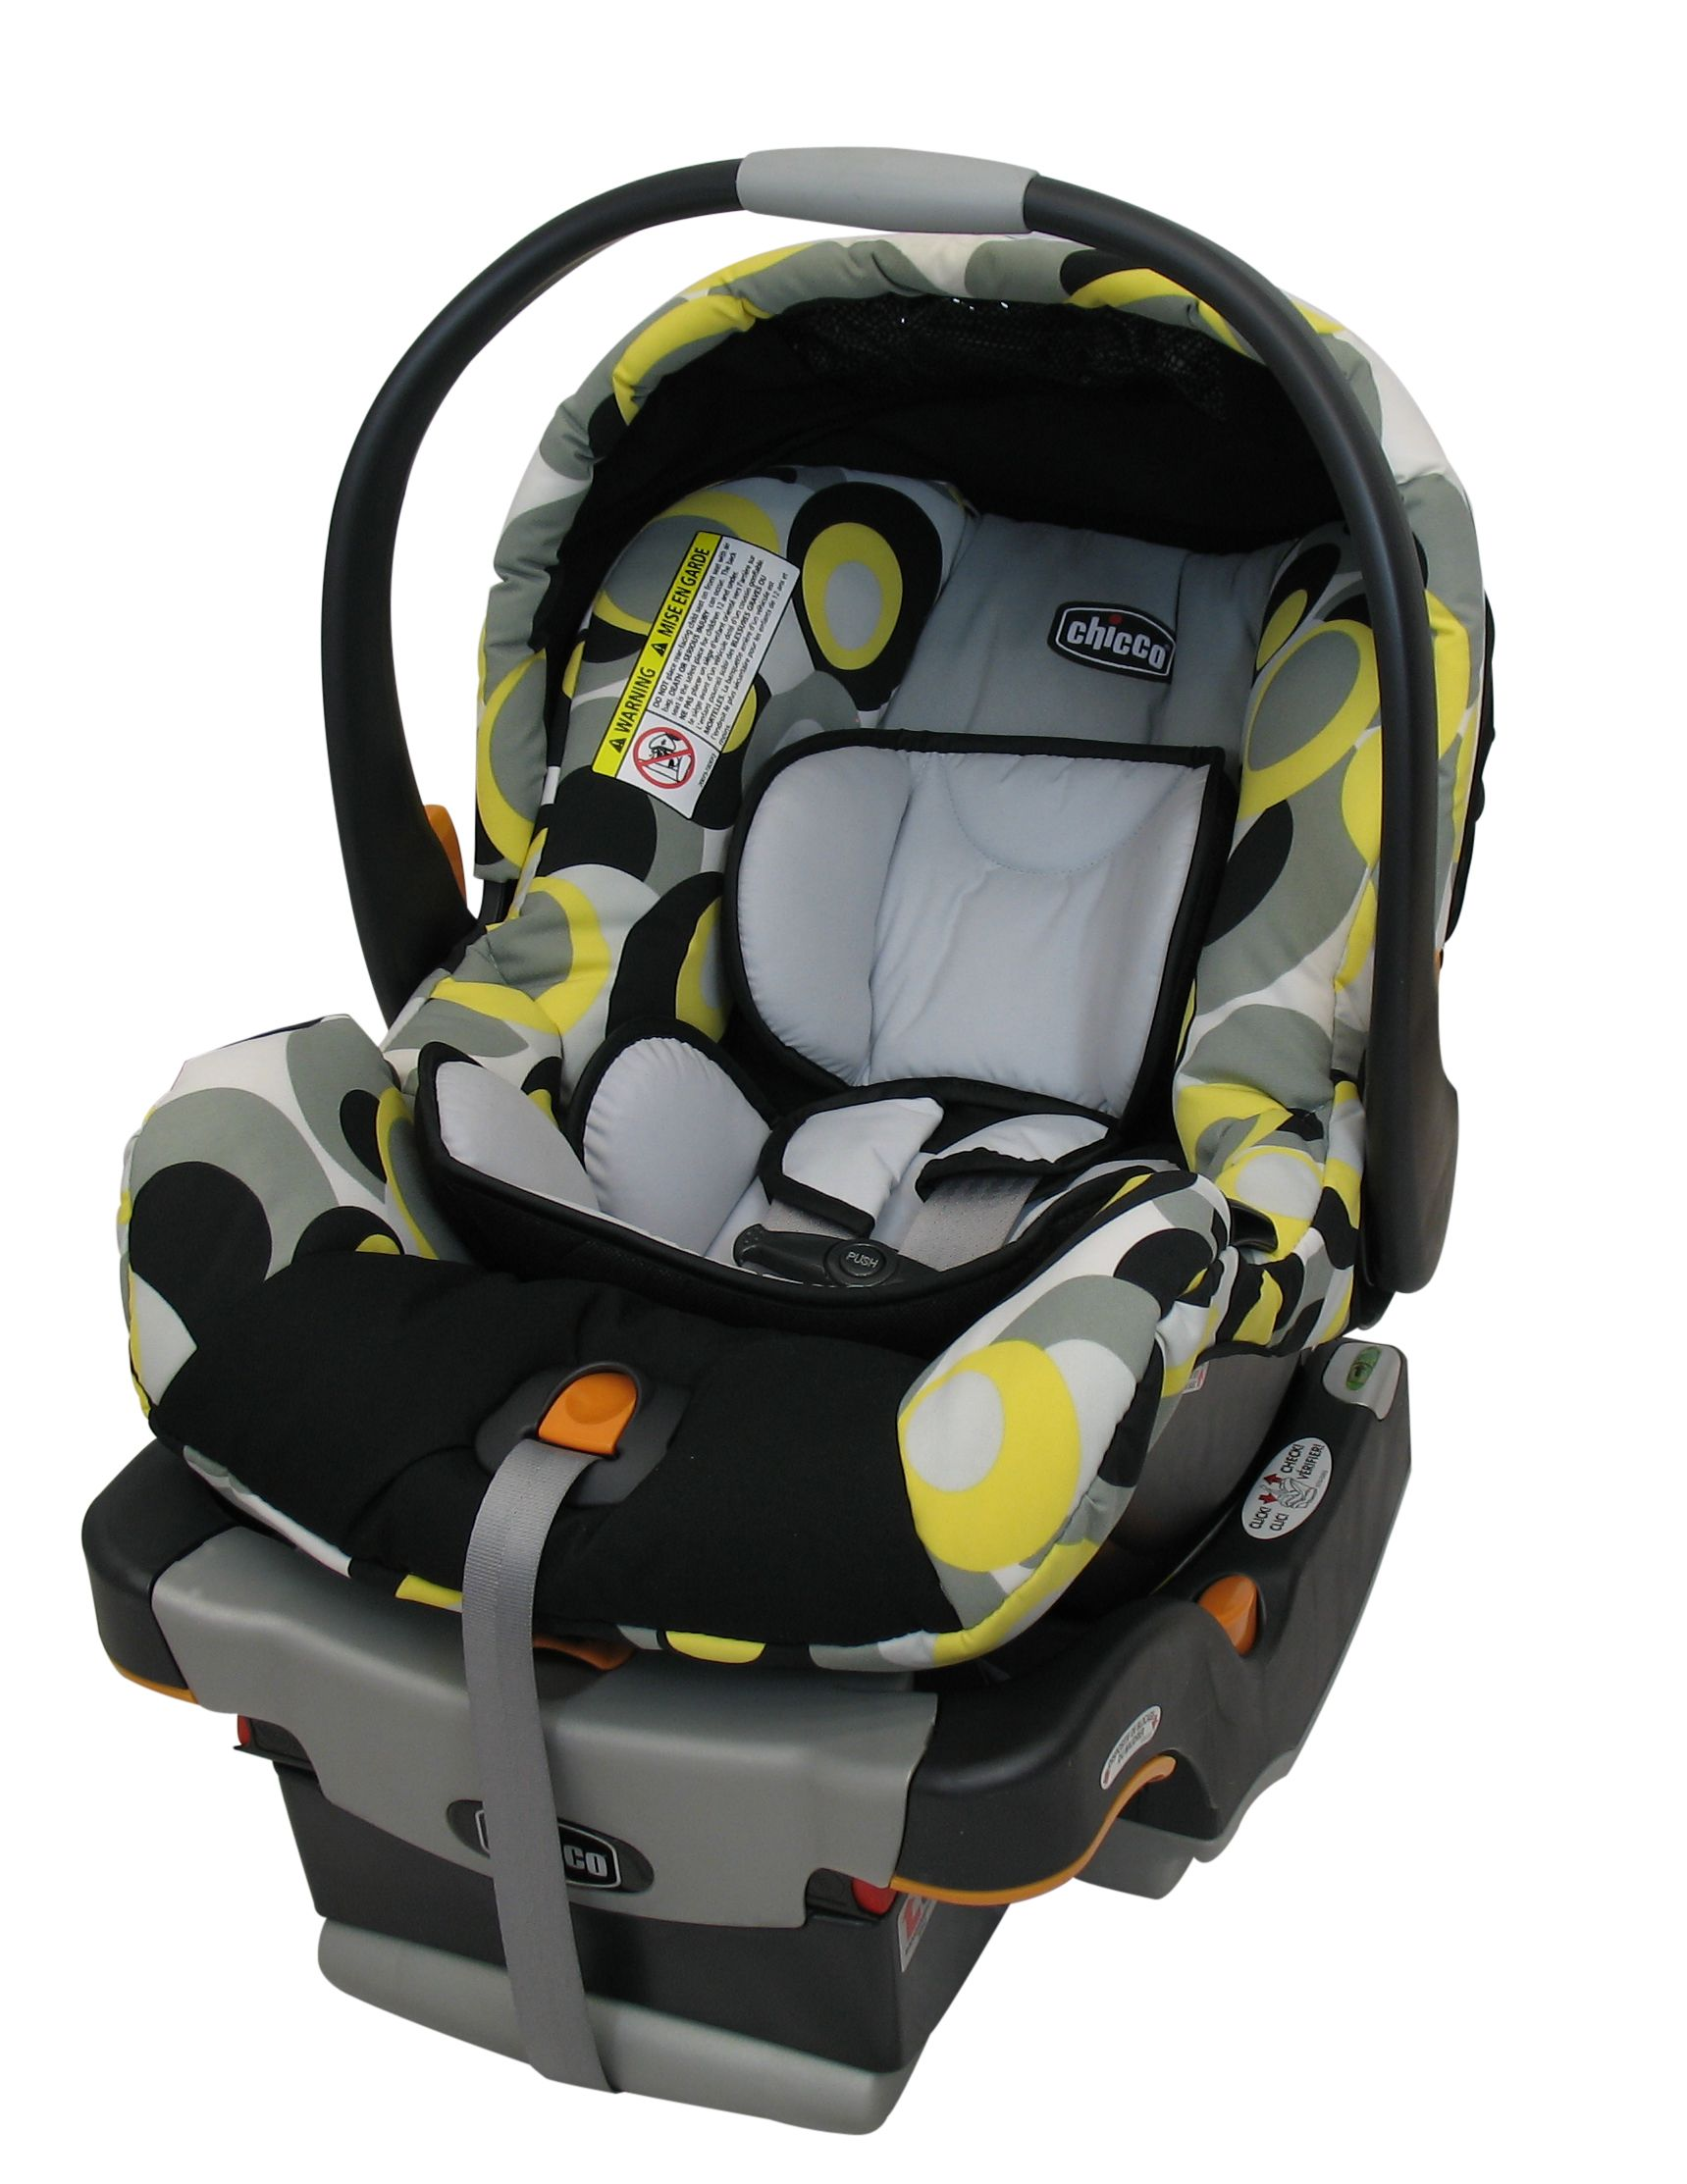 Replacement Chicco KeyFit 30 Infant Car Seat Cover Canopy And Shoulder Pads